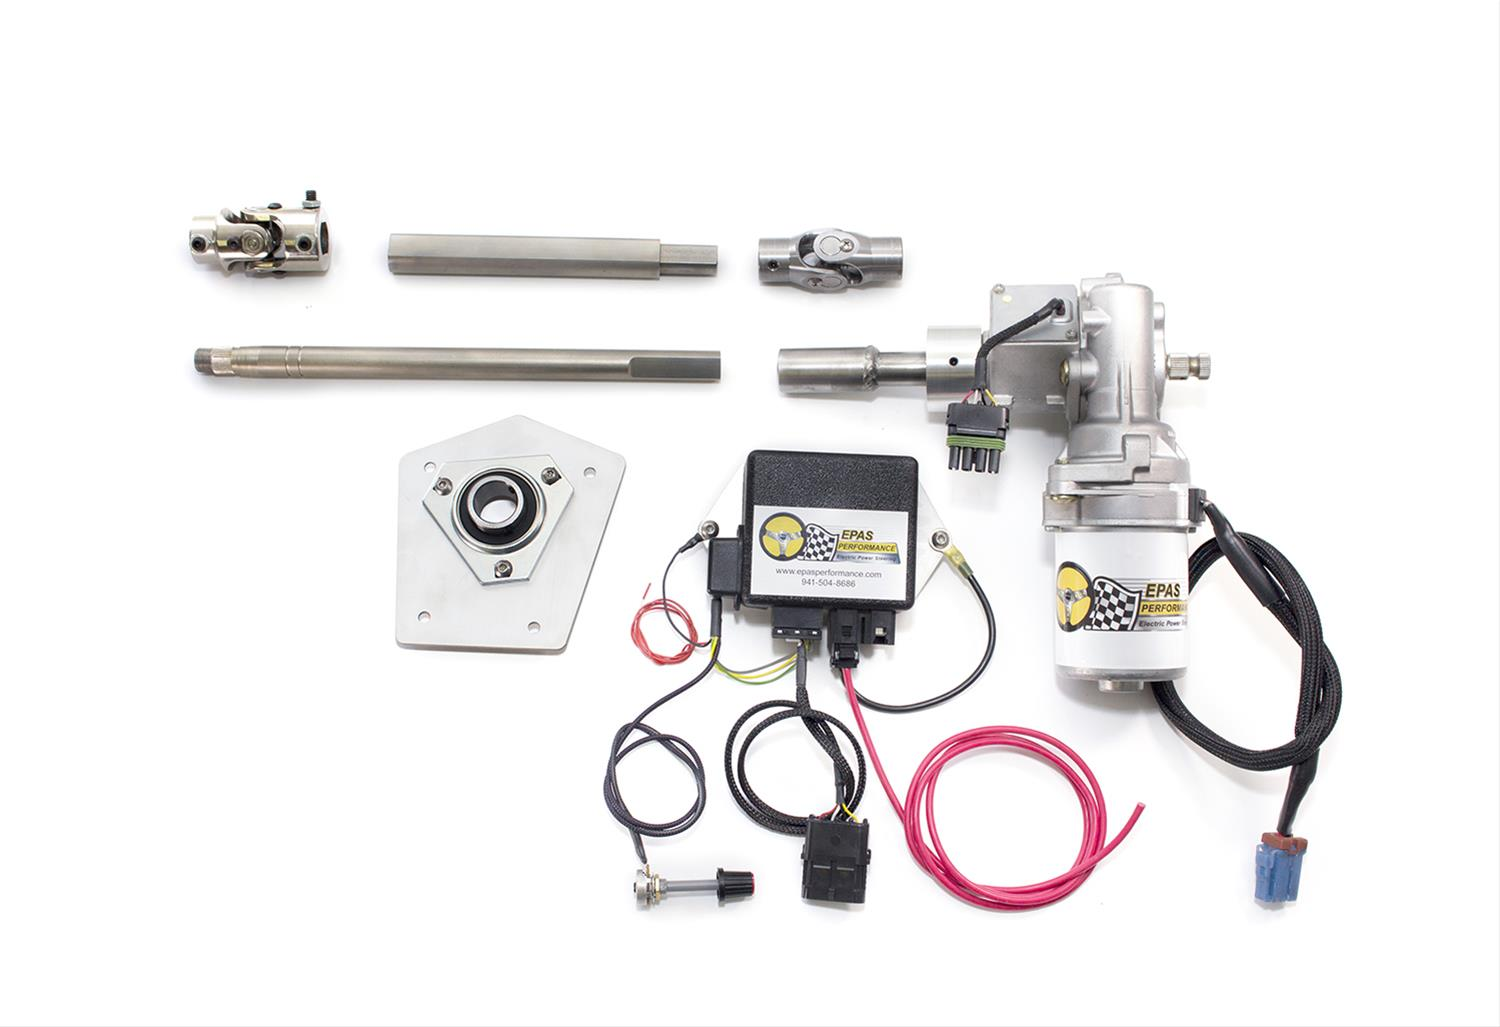 Epas Performance Electric Steering Kits 1004 Free Shipping On Orders Over 99 At Summit Racing